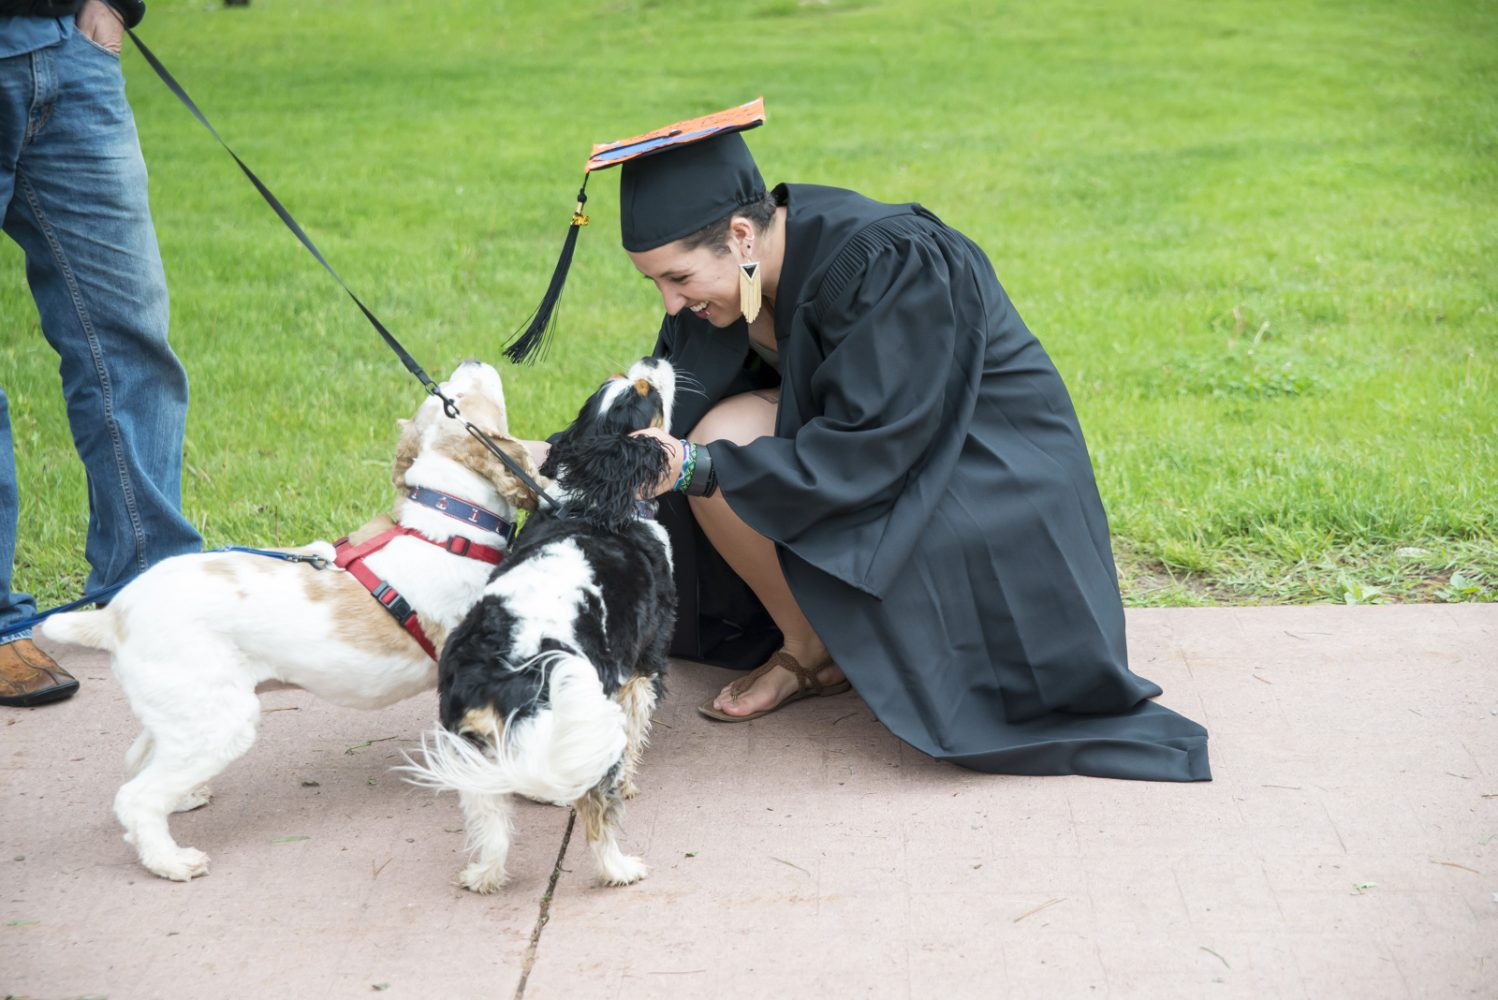 Northland College student takes time to pet dogs